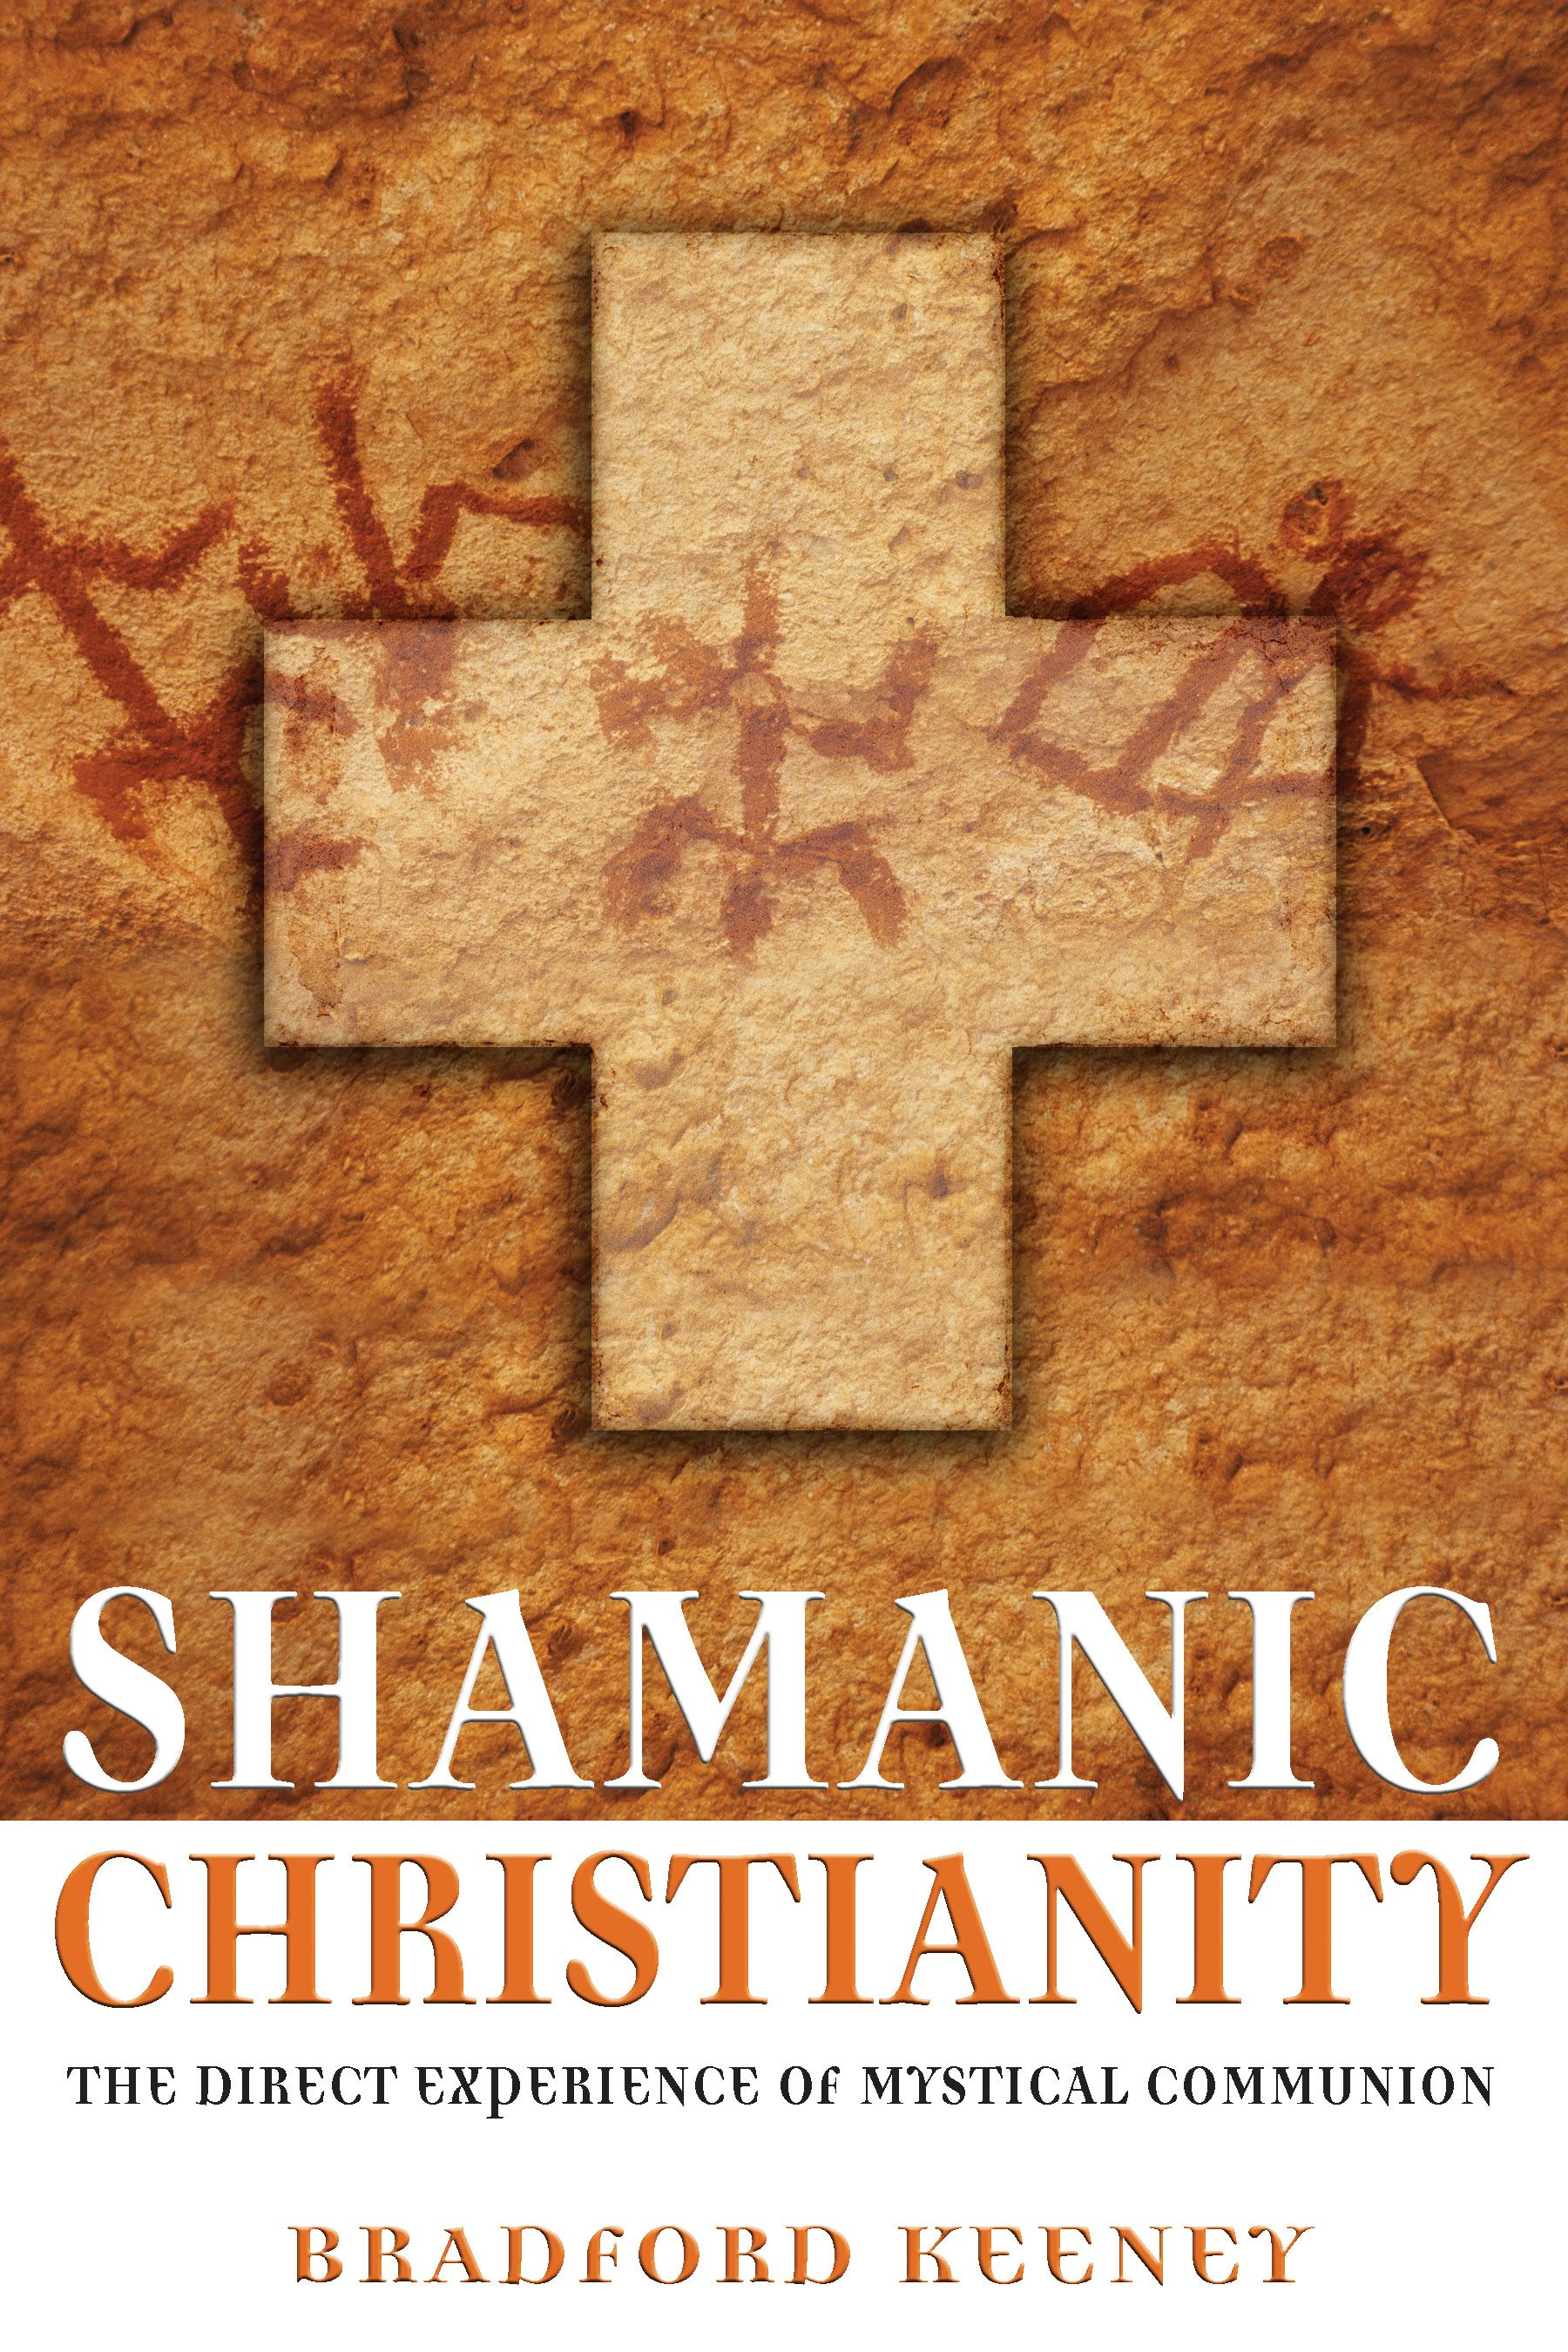 Shamanic christianity 9781594770869 hr